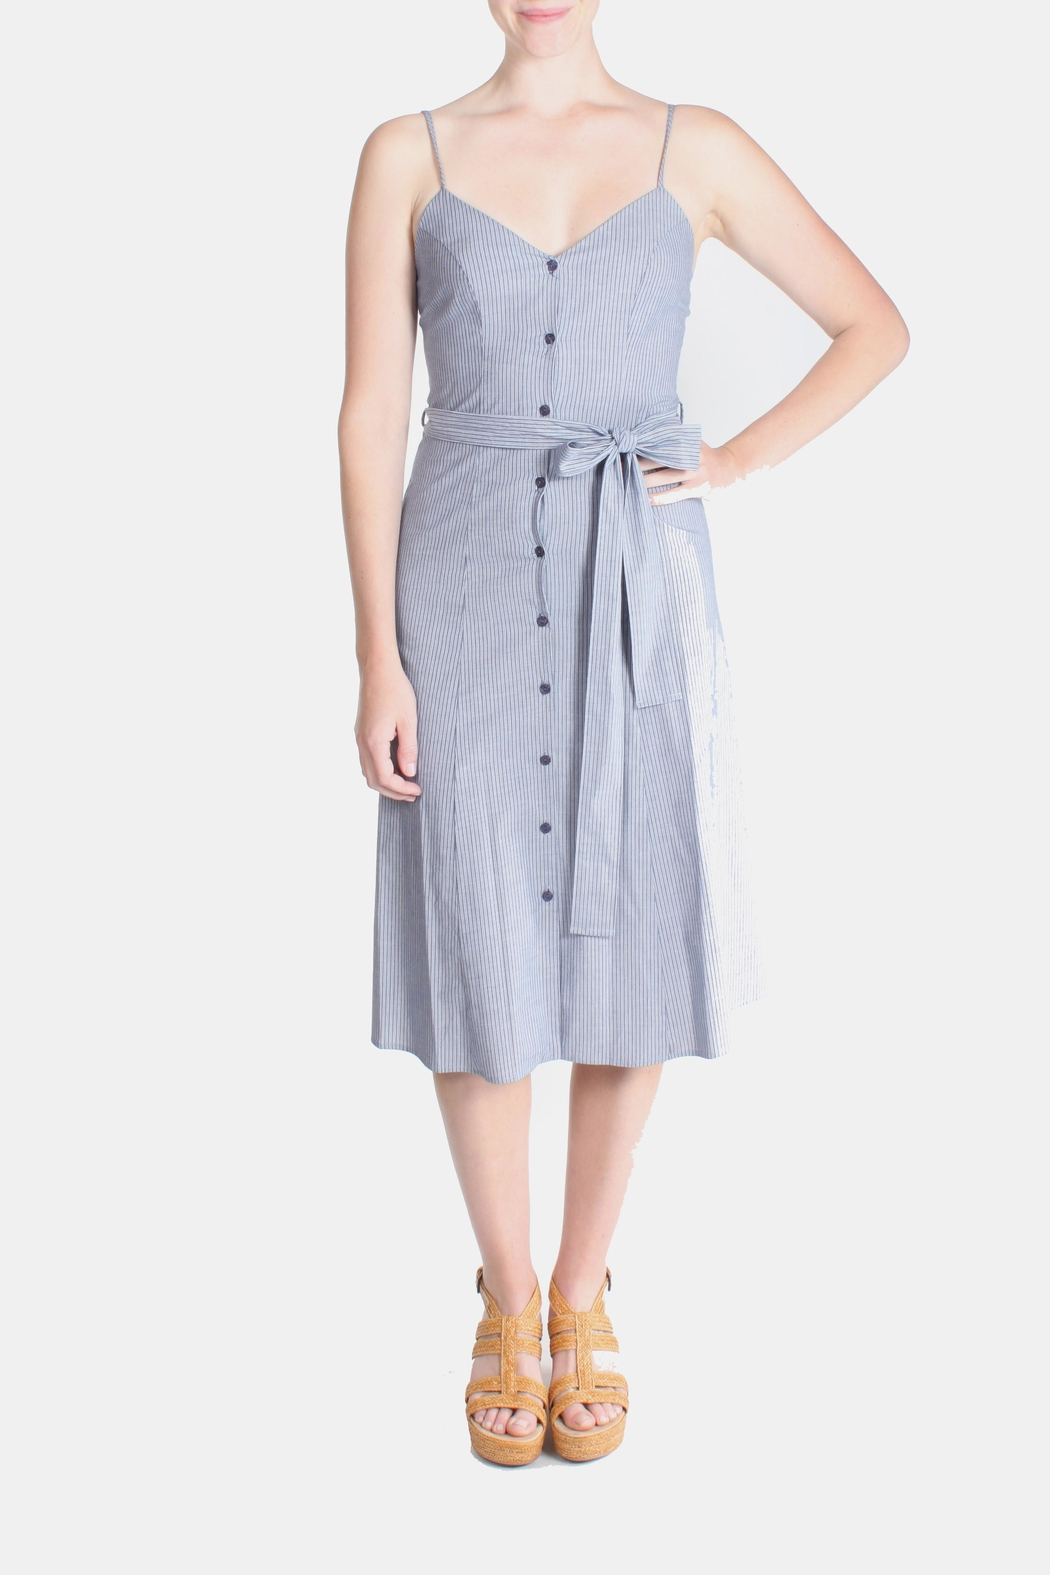 rokoko Denim Stripe Dress - Main Image